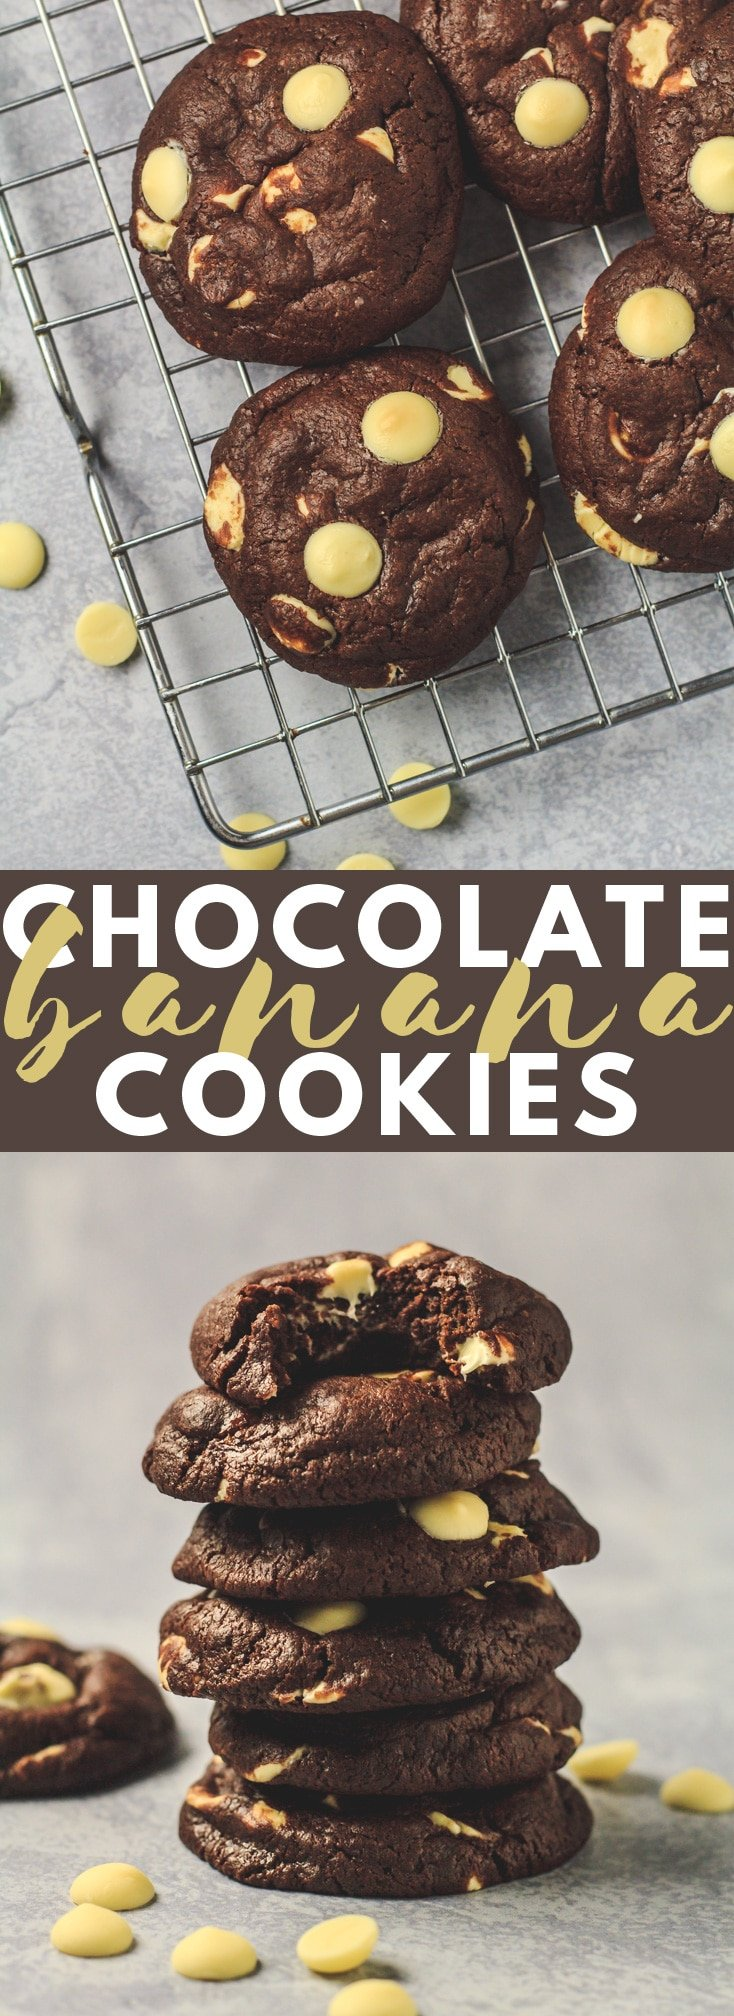 Double Chocolate Banana Cookies - Deliciously thick, soft, and fudgy chocolate cookies that are loaded with banana flavour, and stuffed full of white chocolate chips!